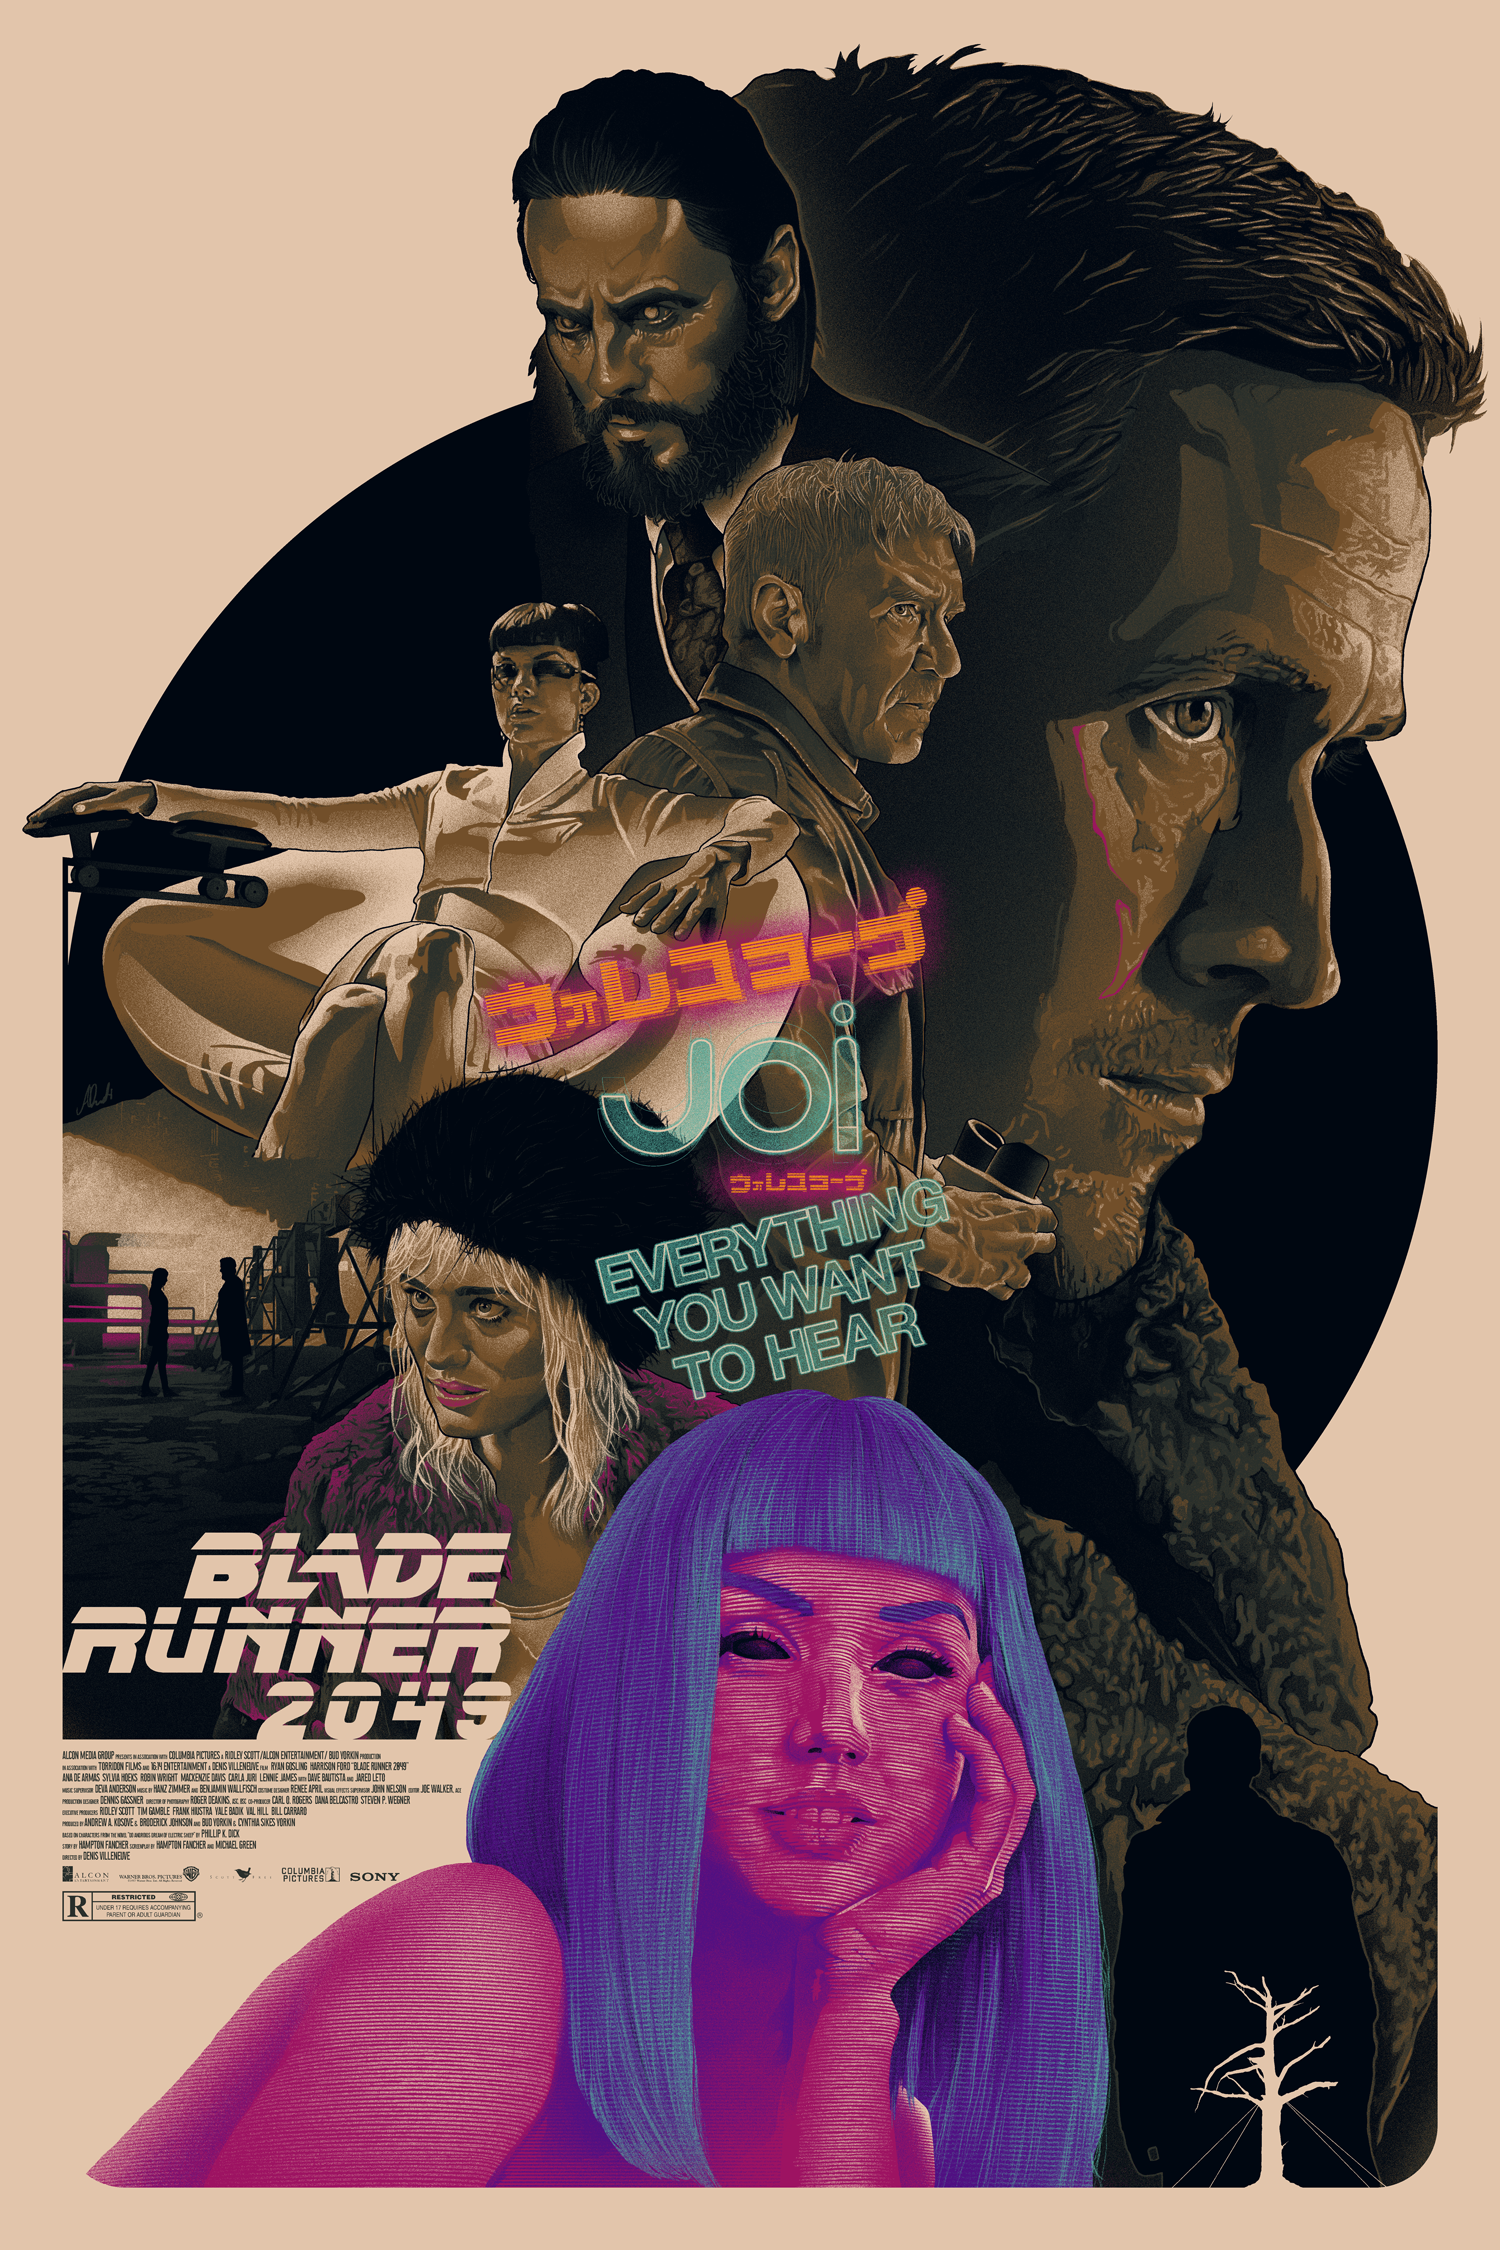 Movie Poster Blade Runner 2049